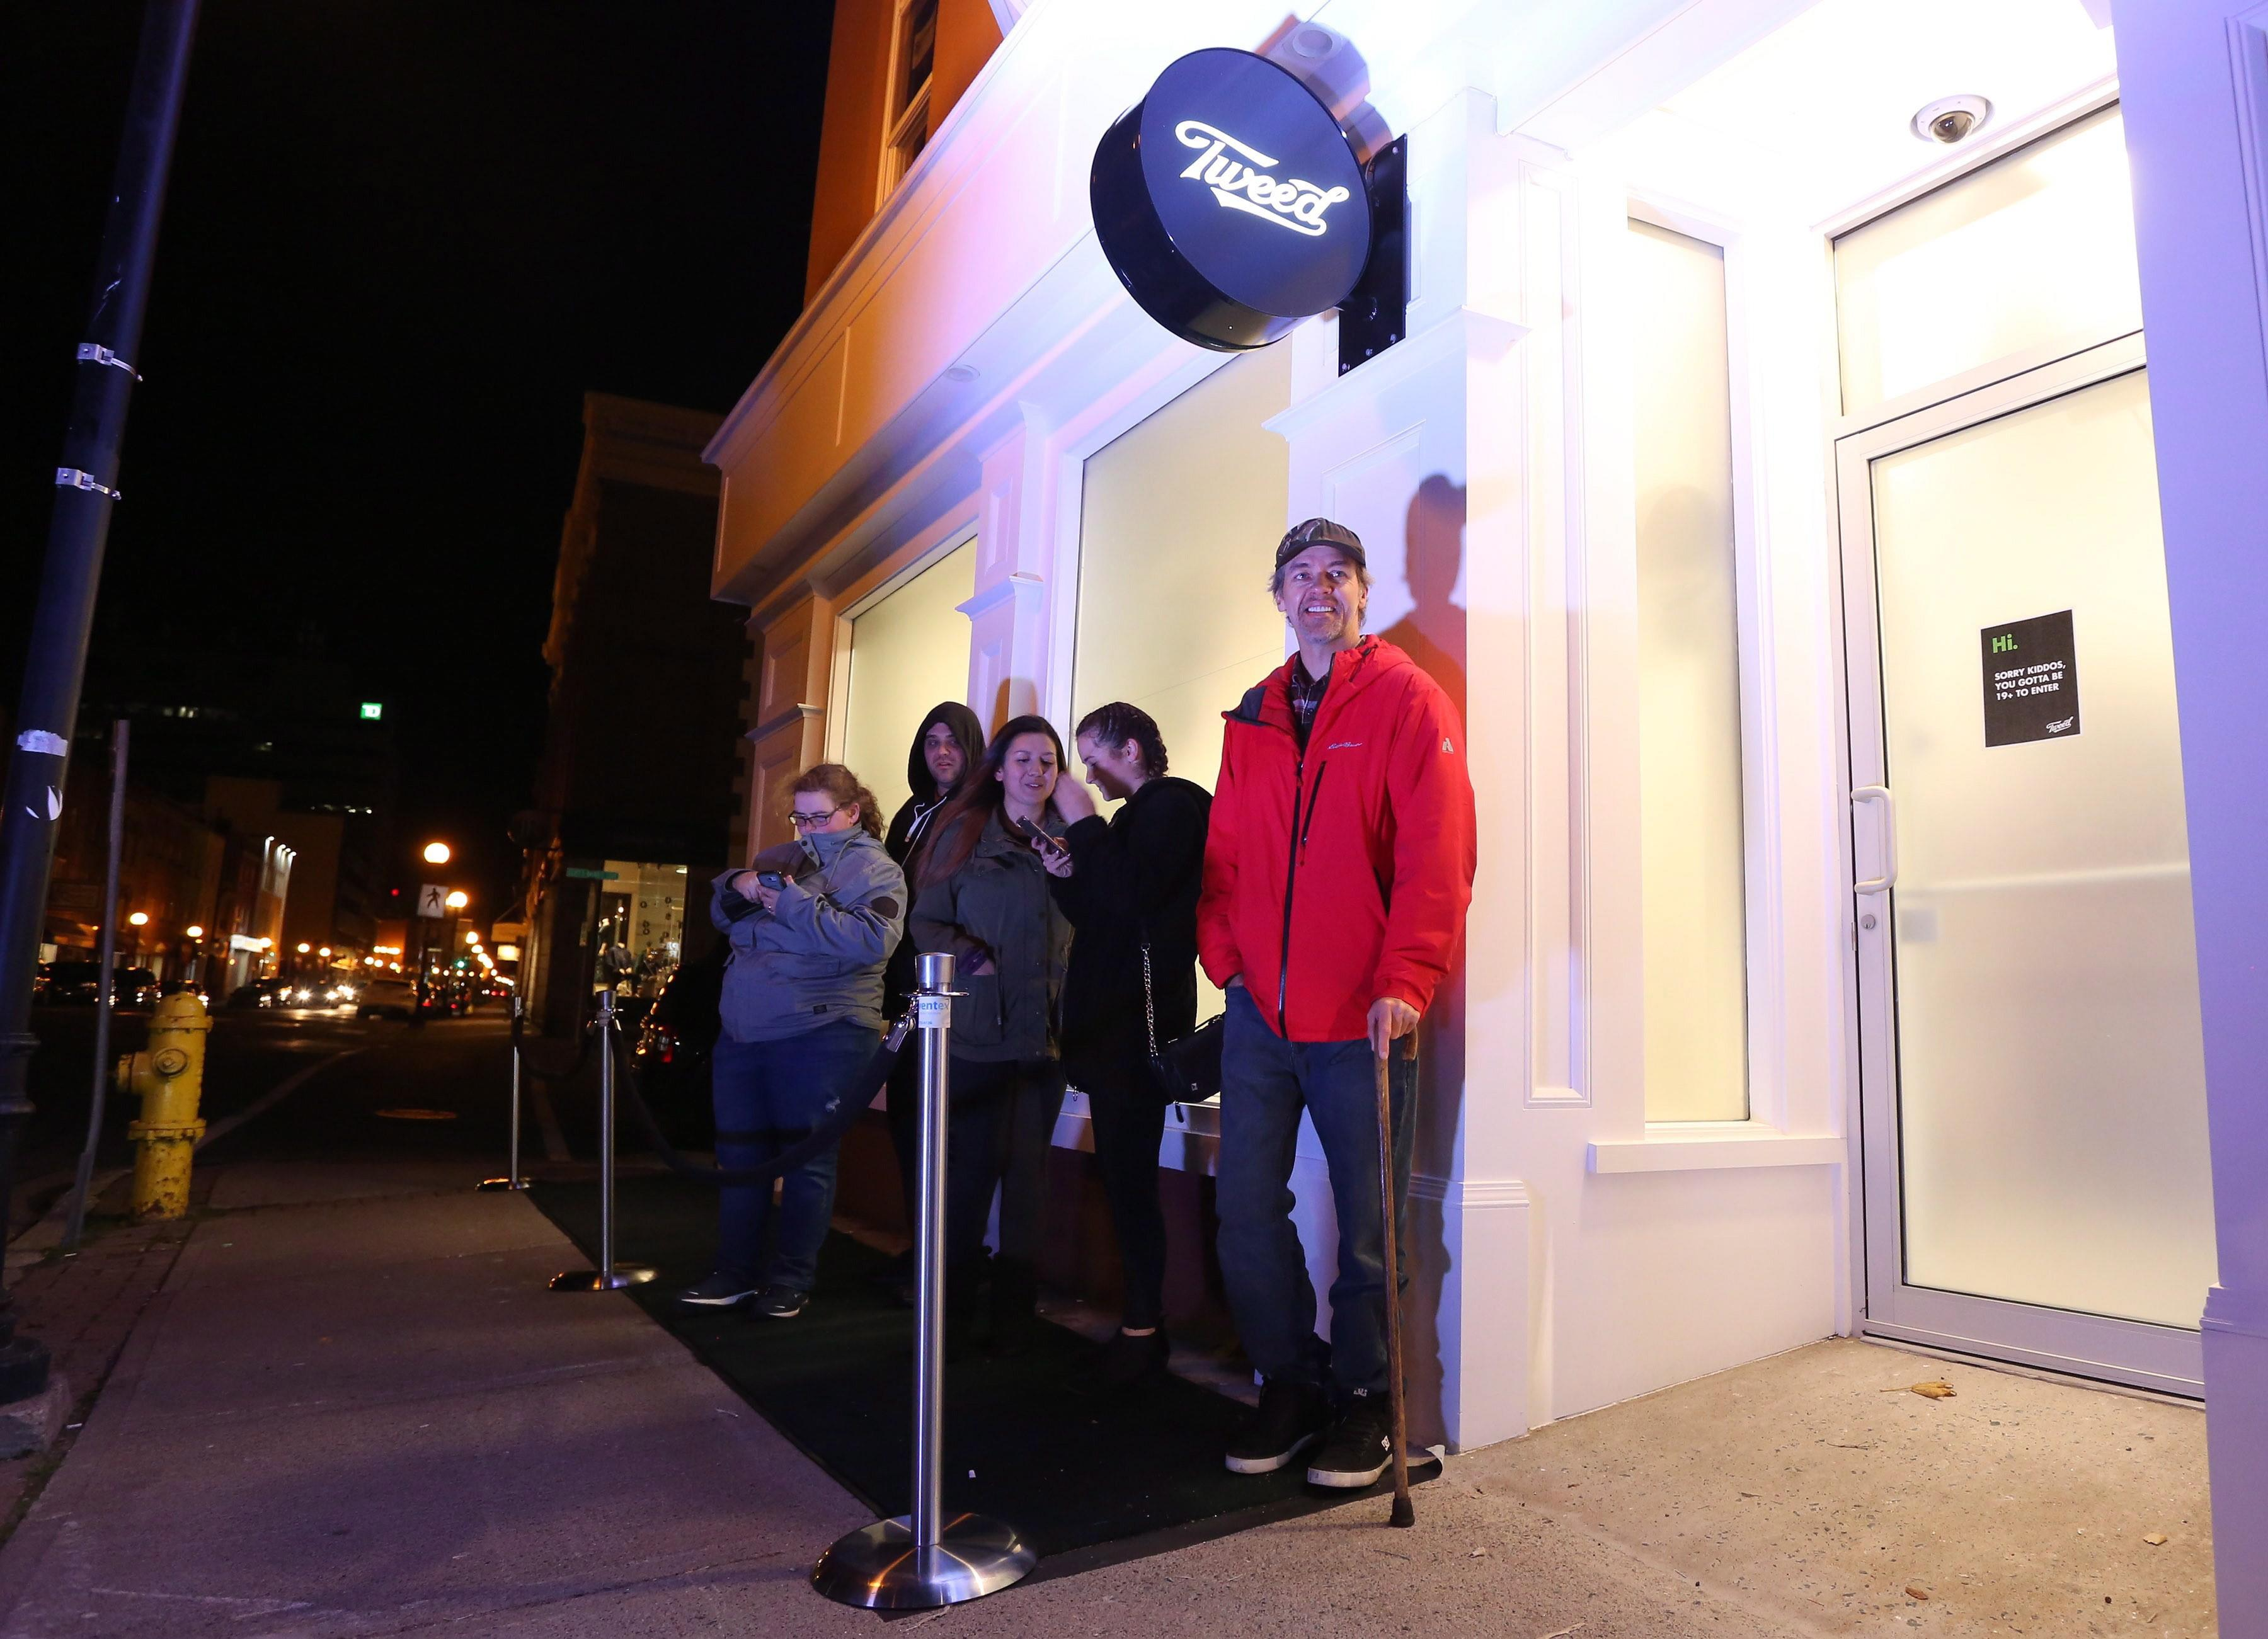 <p>Ian Power is first in line at the Tweed store on Water Street in St. John's N.L. on Tuesday, October 16, 2018. He made history and bought the first legal cannabis for recreational use in Canada after midnight.<br>(Photo from Paul Daly, The Canadian Press) </p>